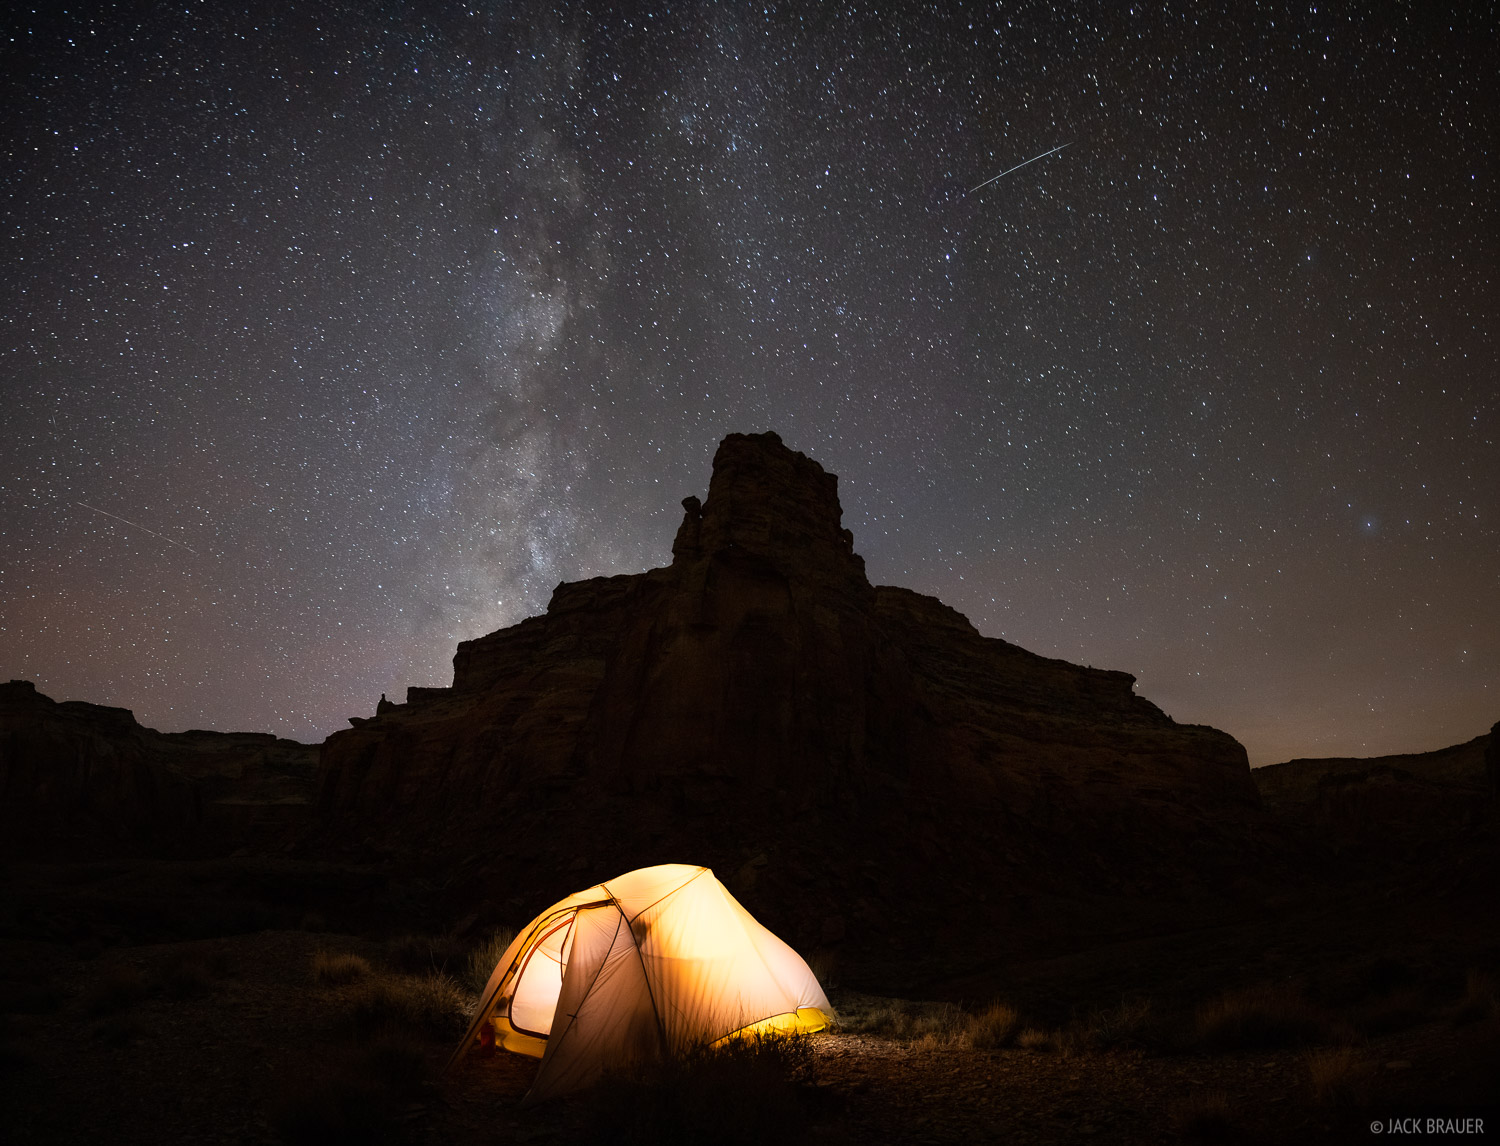 Sleeping in a remote canyon, on a remote planet, in a remote galaxy.